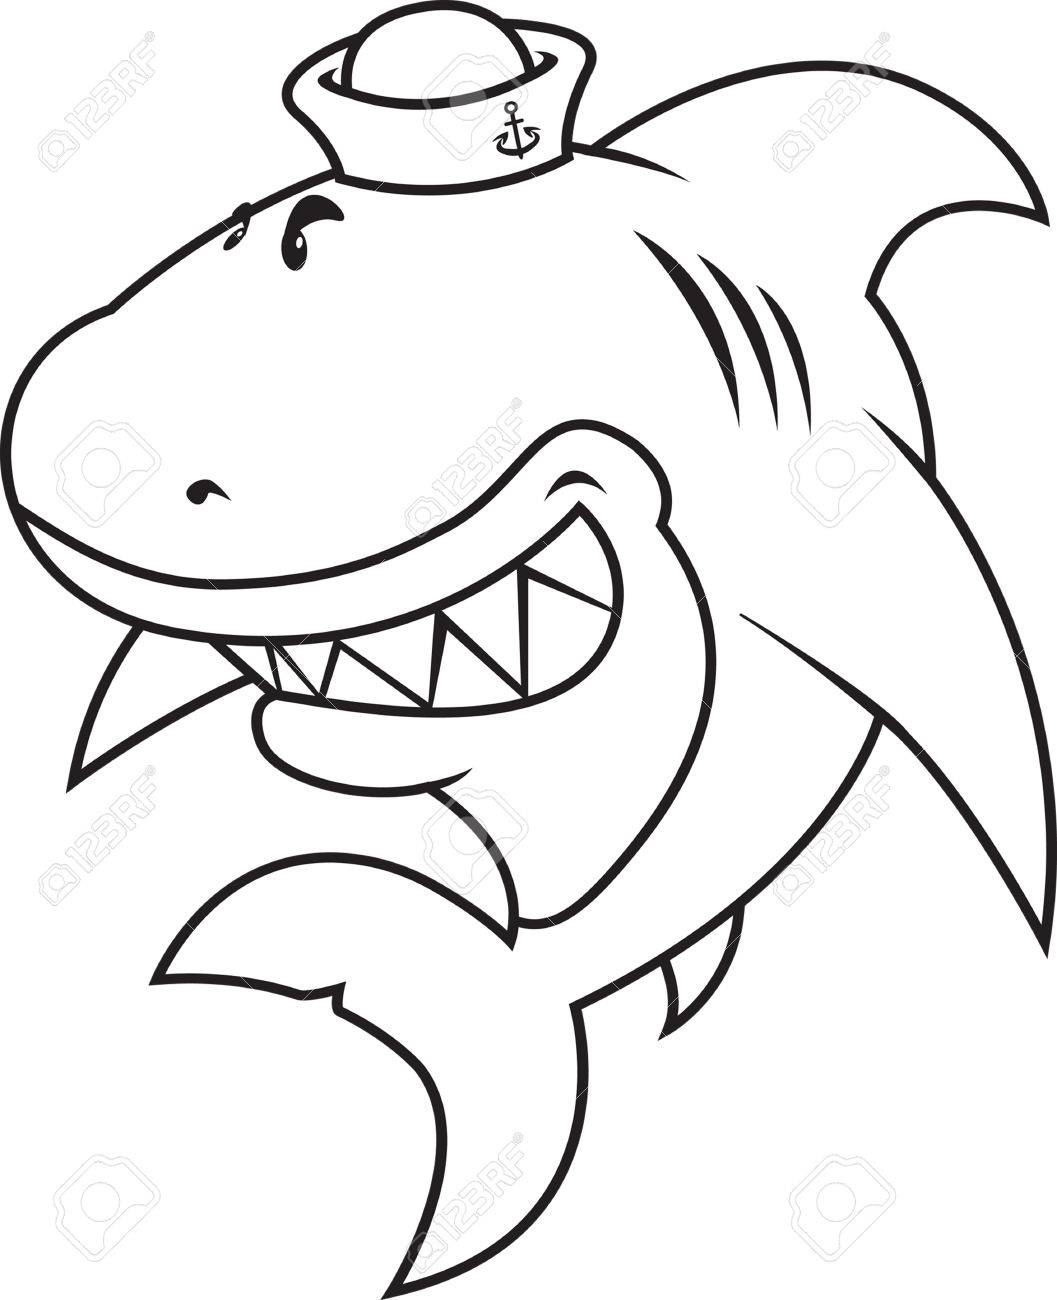 Funny Looking Great White Shark With Sailor Hatcoloring Book Stock Vector